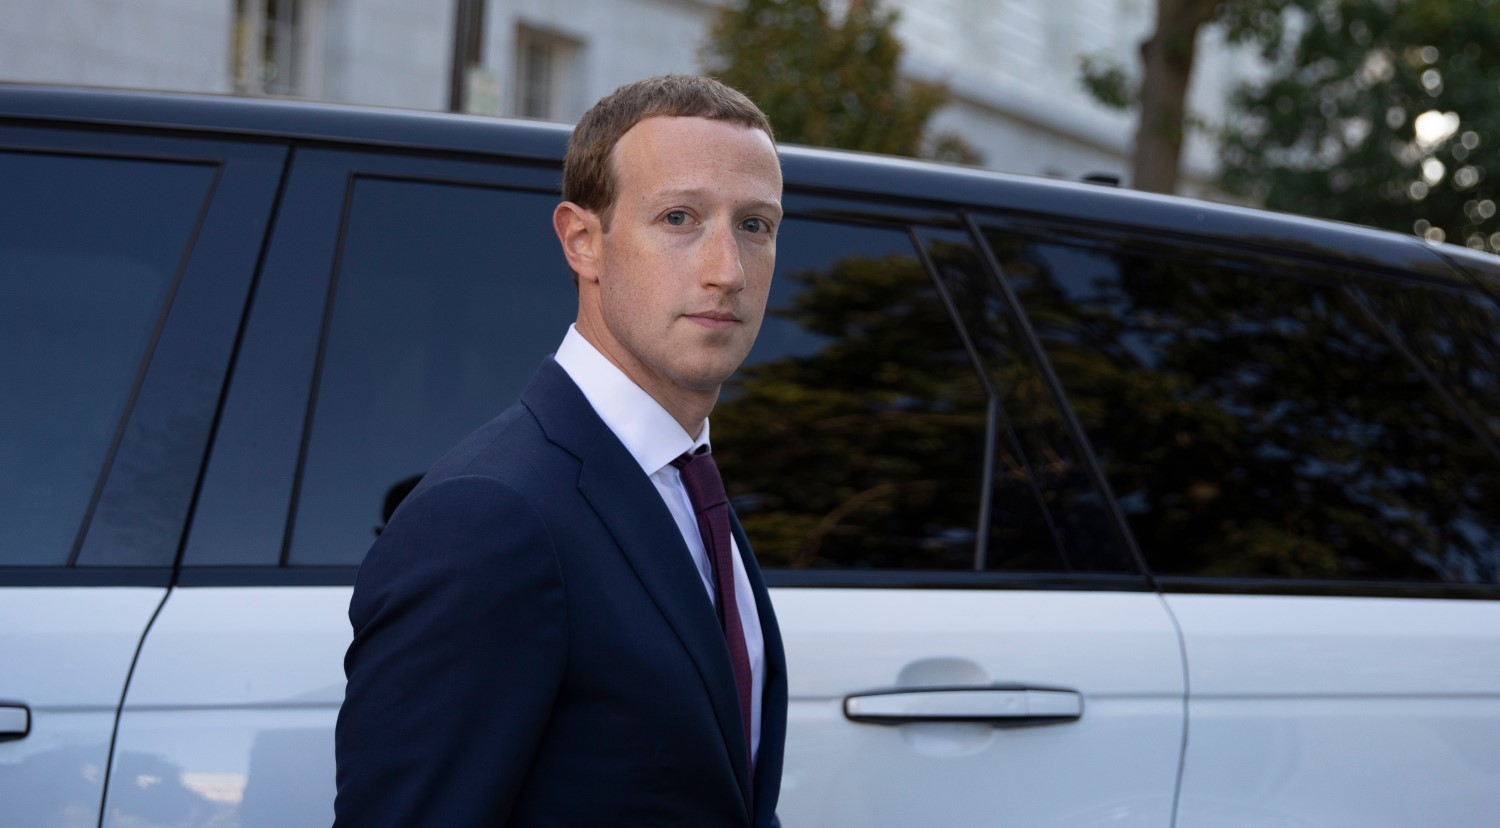 Libra Payments Can Boost Facebook's Ads Business, Zuckerberg Says